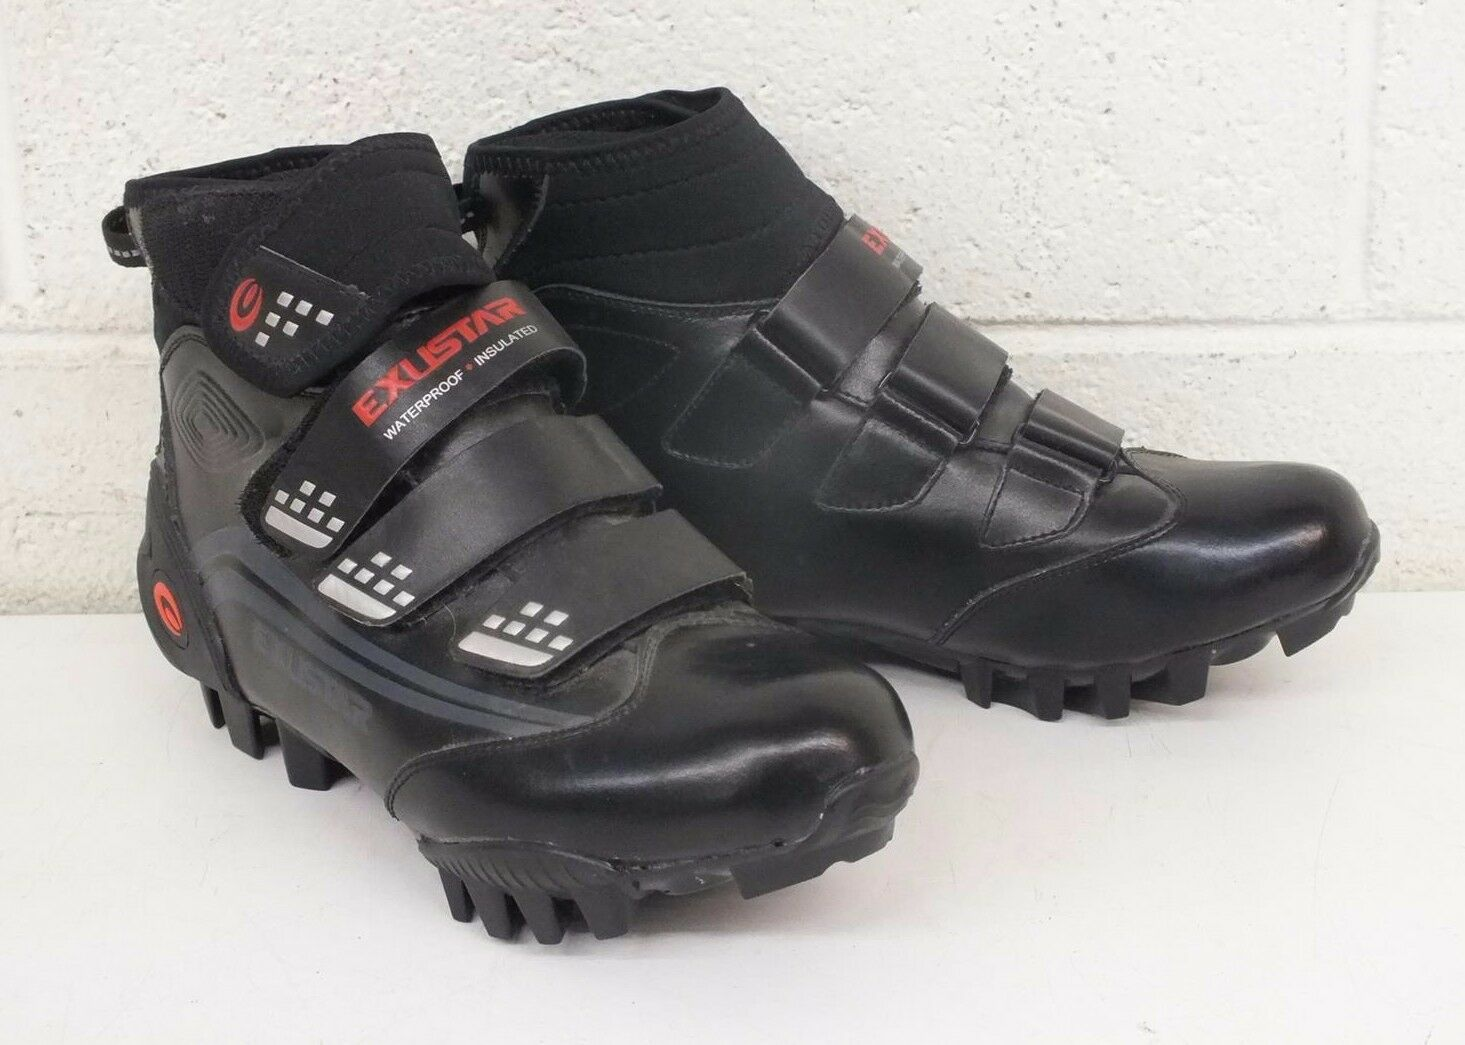 Exustar E-SM343 Cold Weather High-Top Mountain Bike Cycling shoes US 7 40 NEW